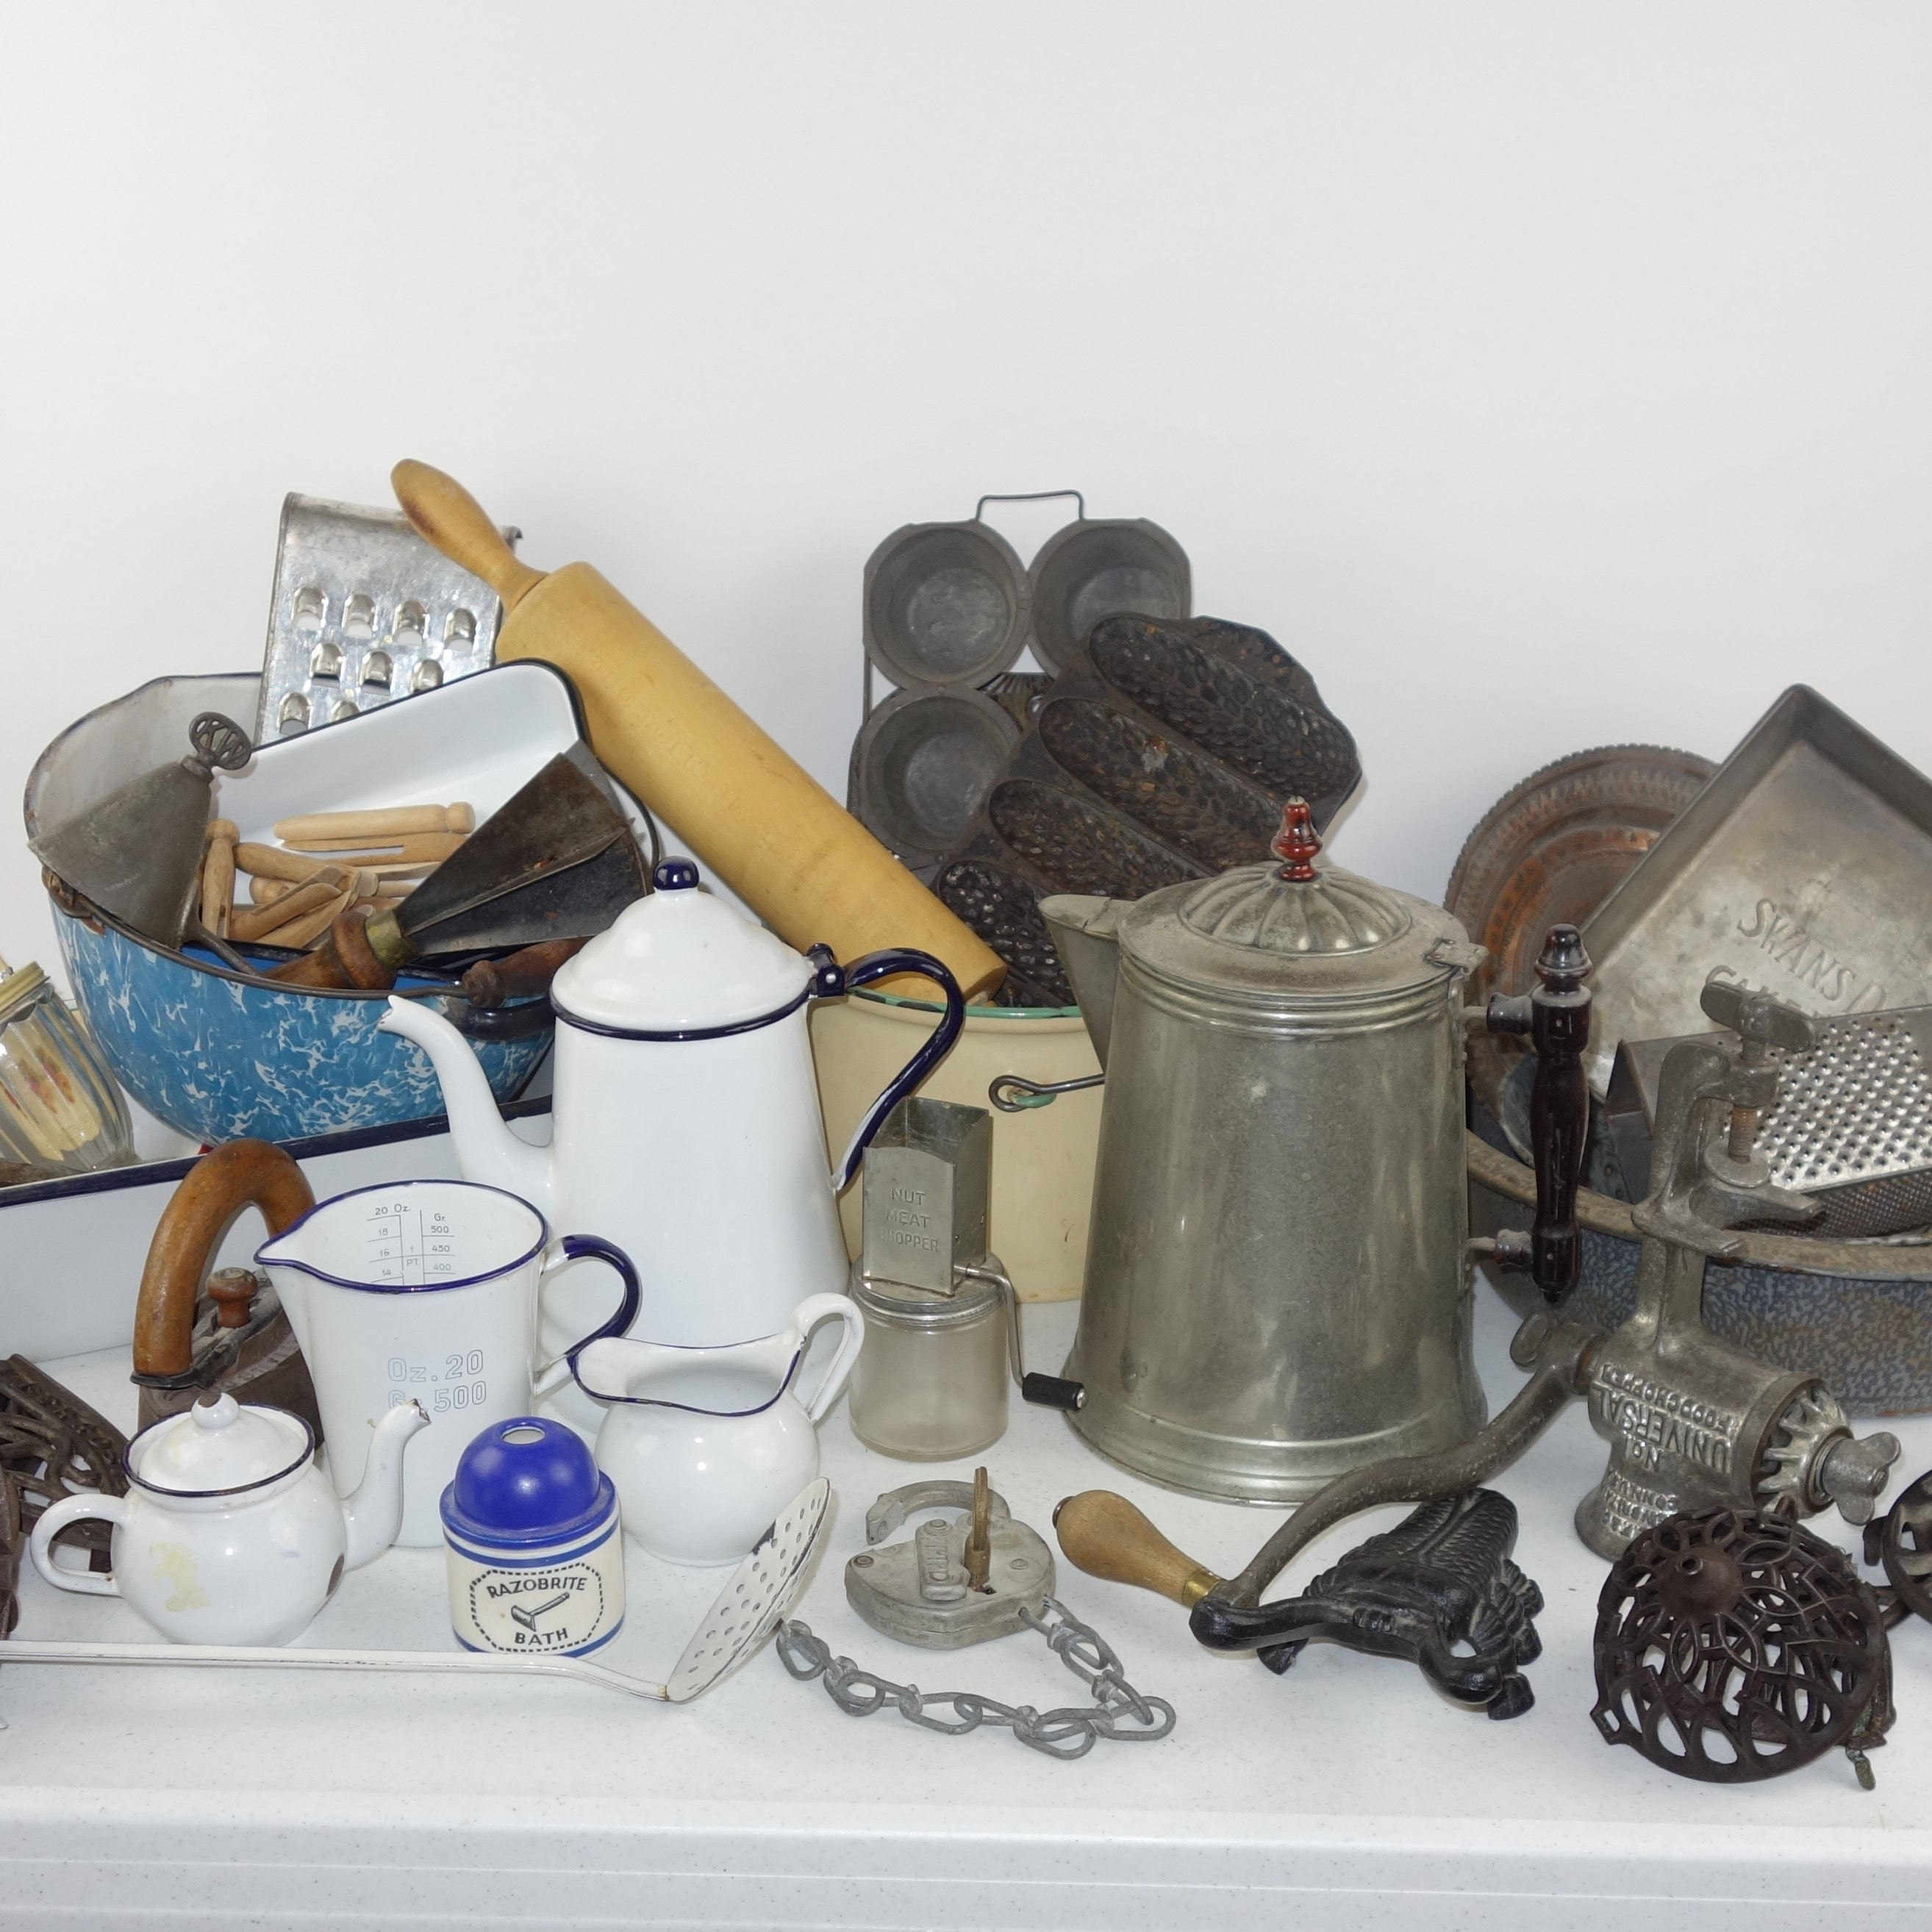 Collection of Vintage Kitchenware including Cast Iron and Enamelware